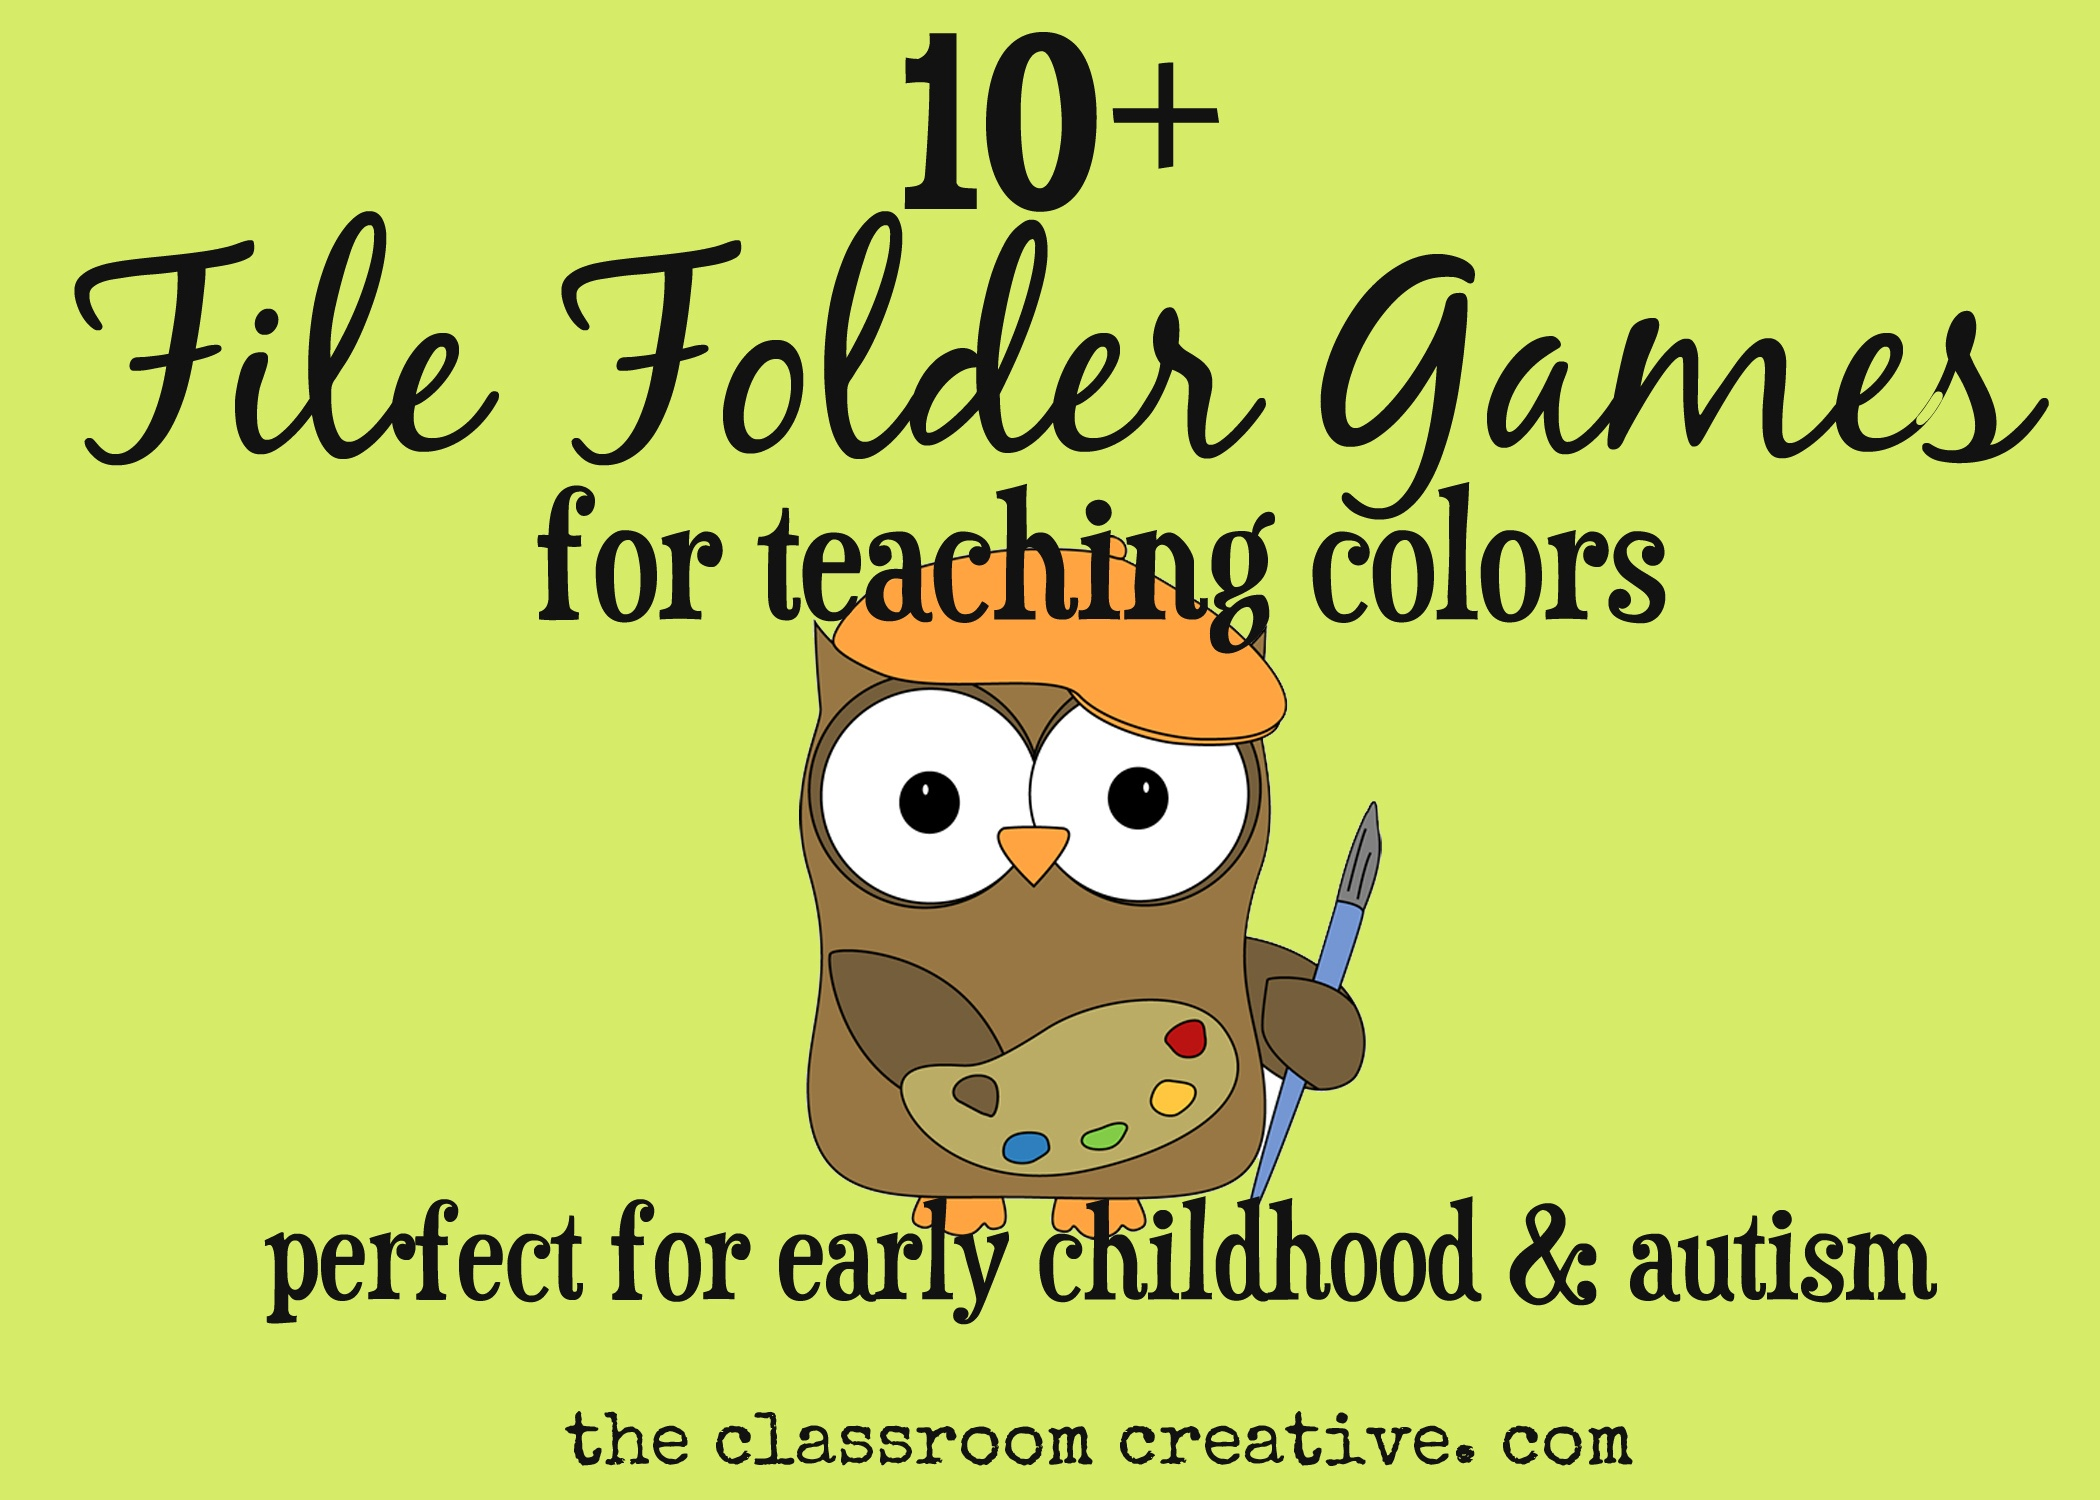 File Folder Games For Teaching Colors - Free Printable Fall File - Free Printable Fall File Folder Games